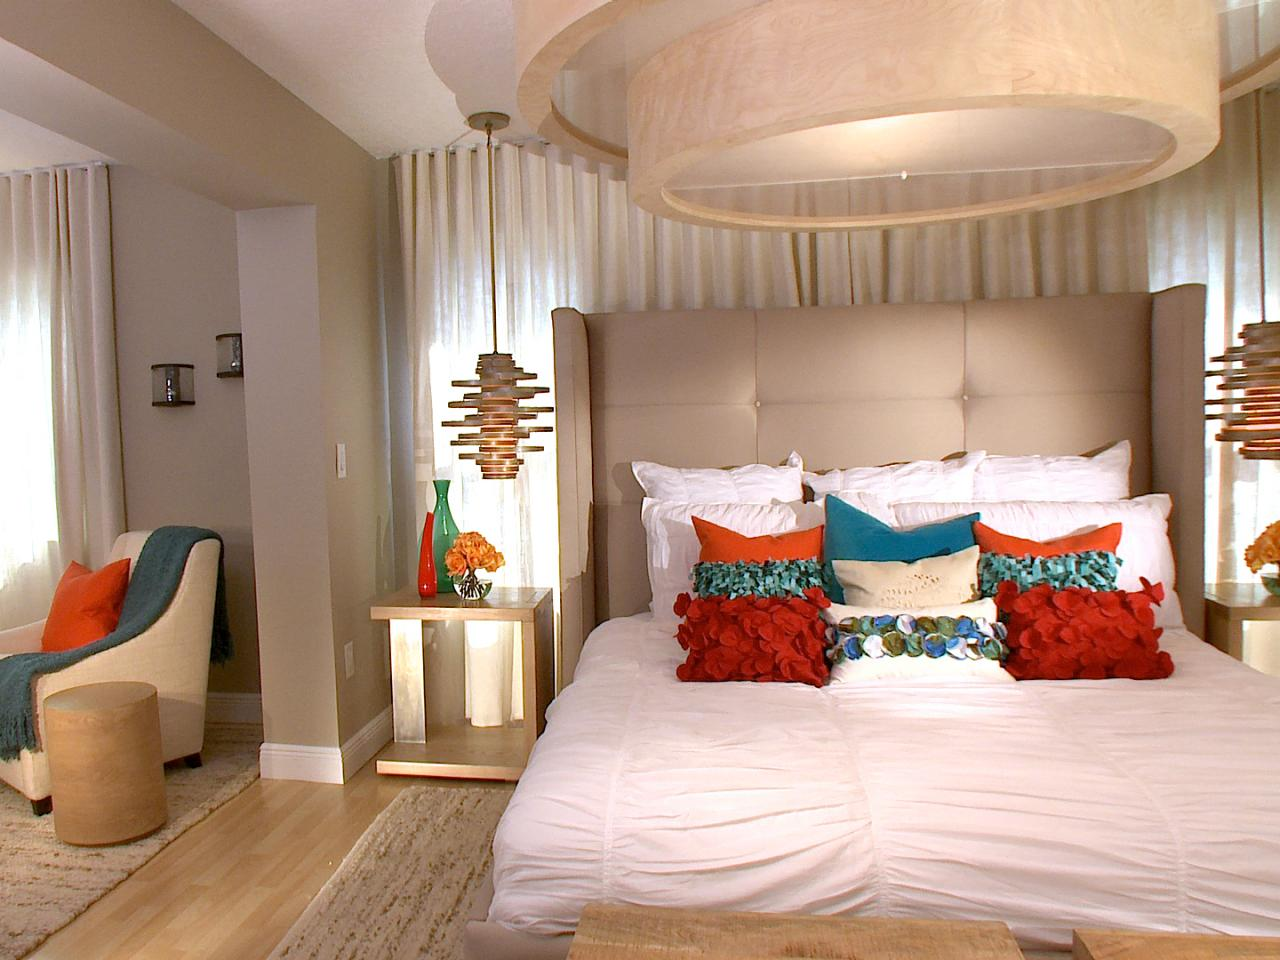 Color Ideas For Bedrooms designing the bedroom as a couple | hgtv's decorating & design